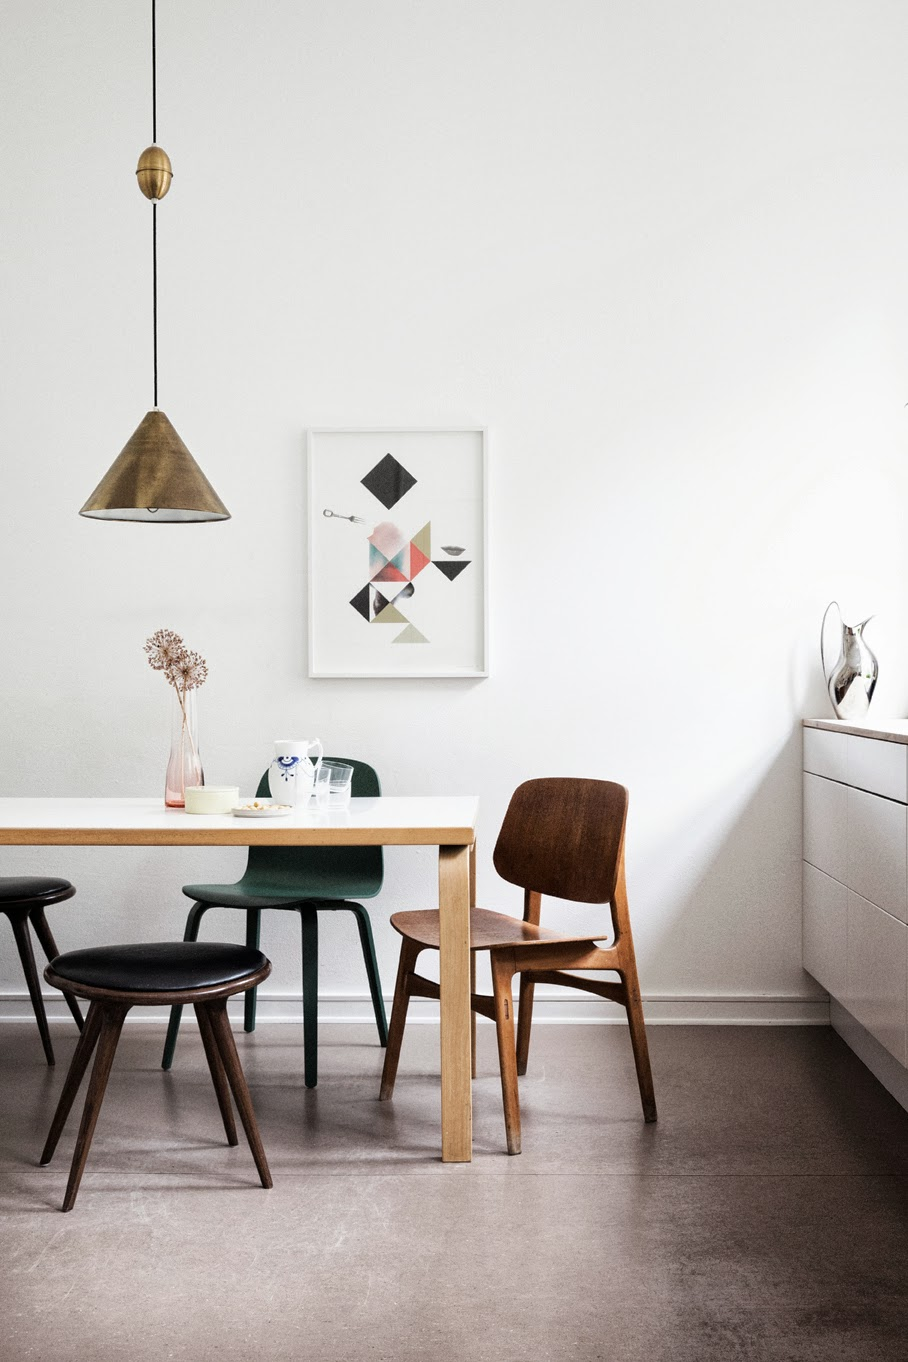 The home of graphic designer Tanja Vibe for Elle Decoration 3